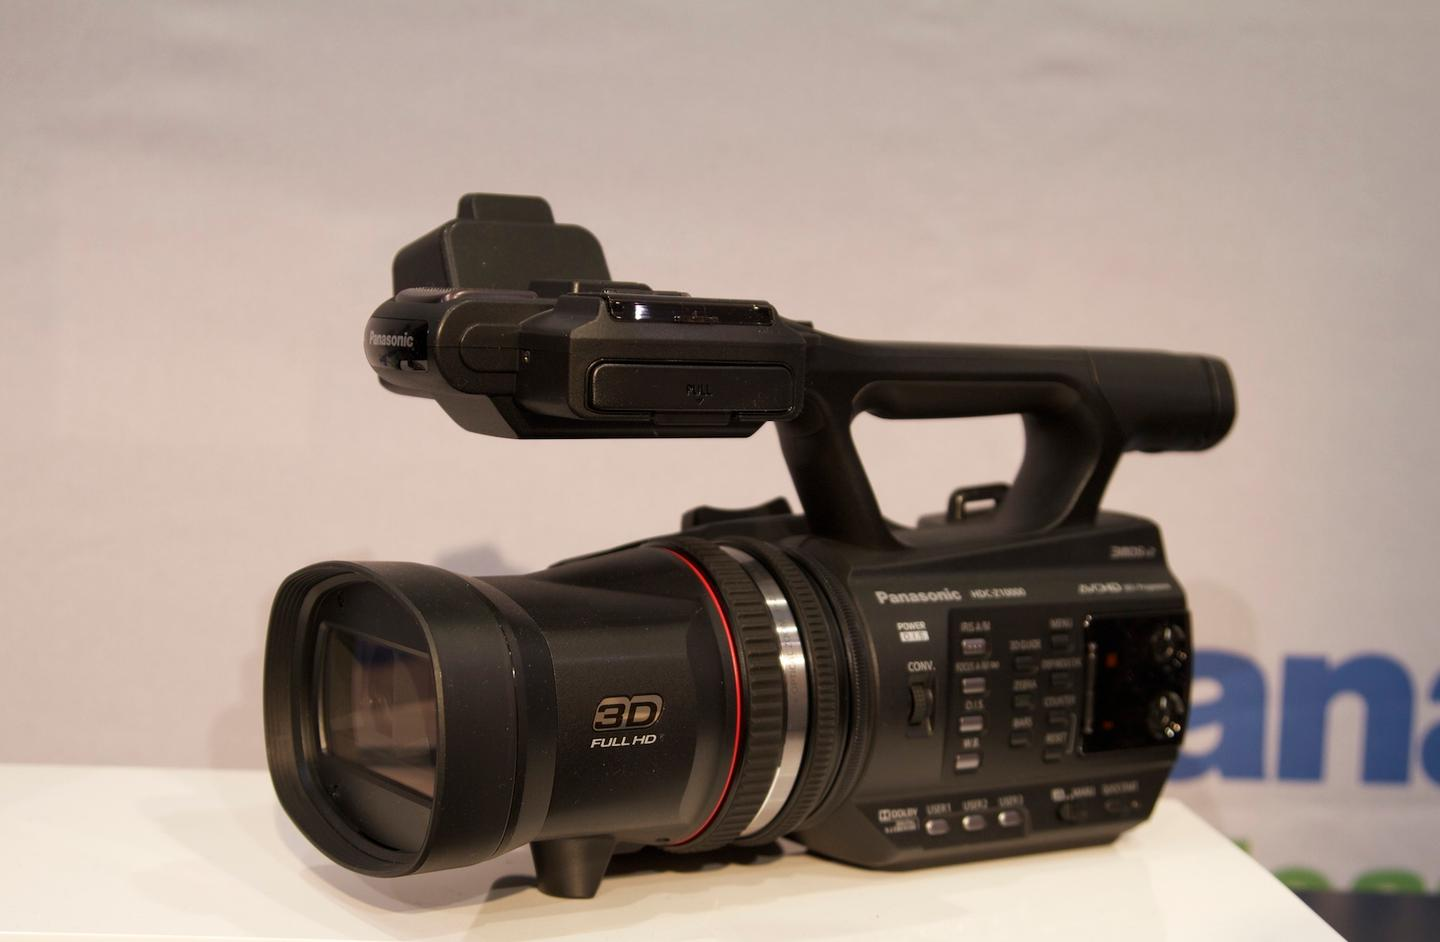 Panasonic's new HDC-Z10000 twin lens 2D/3D compact, handheld camcorder on display at CES 2012